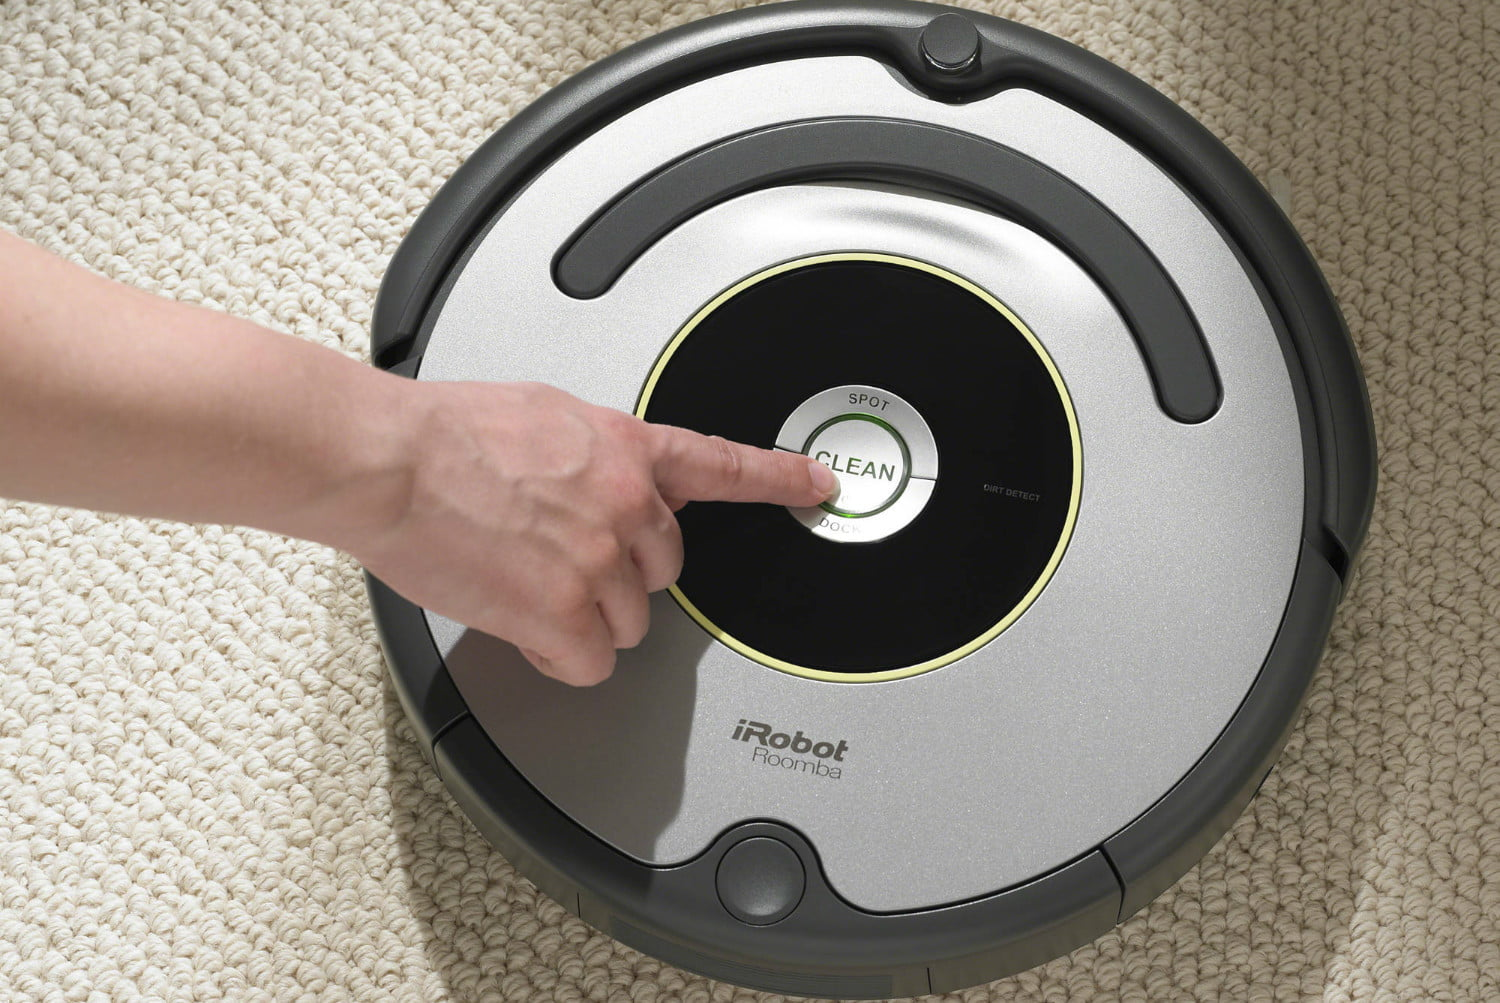 Stage Black Friday In July 2019 Ad Deals And Sales Best Roomba Robot Vacuum Deals For June 2019 Digital Trends